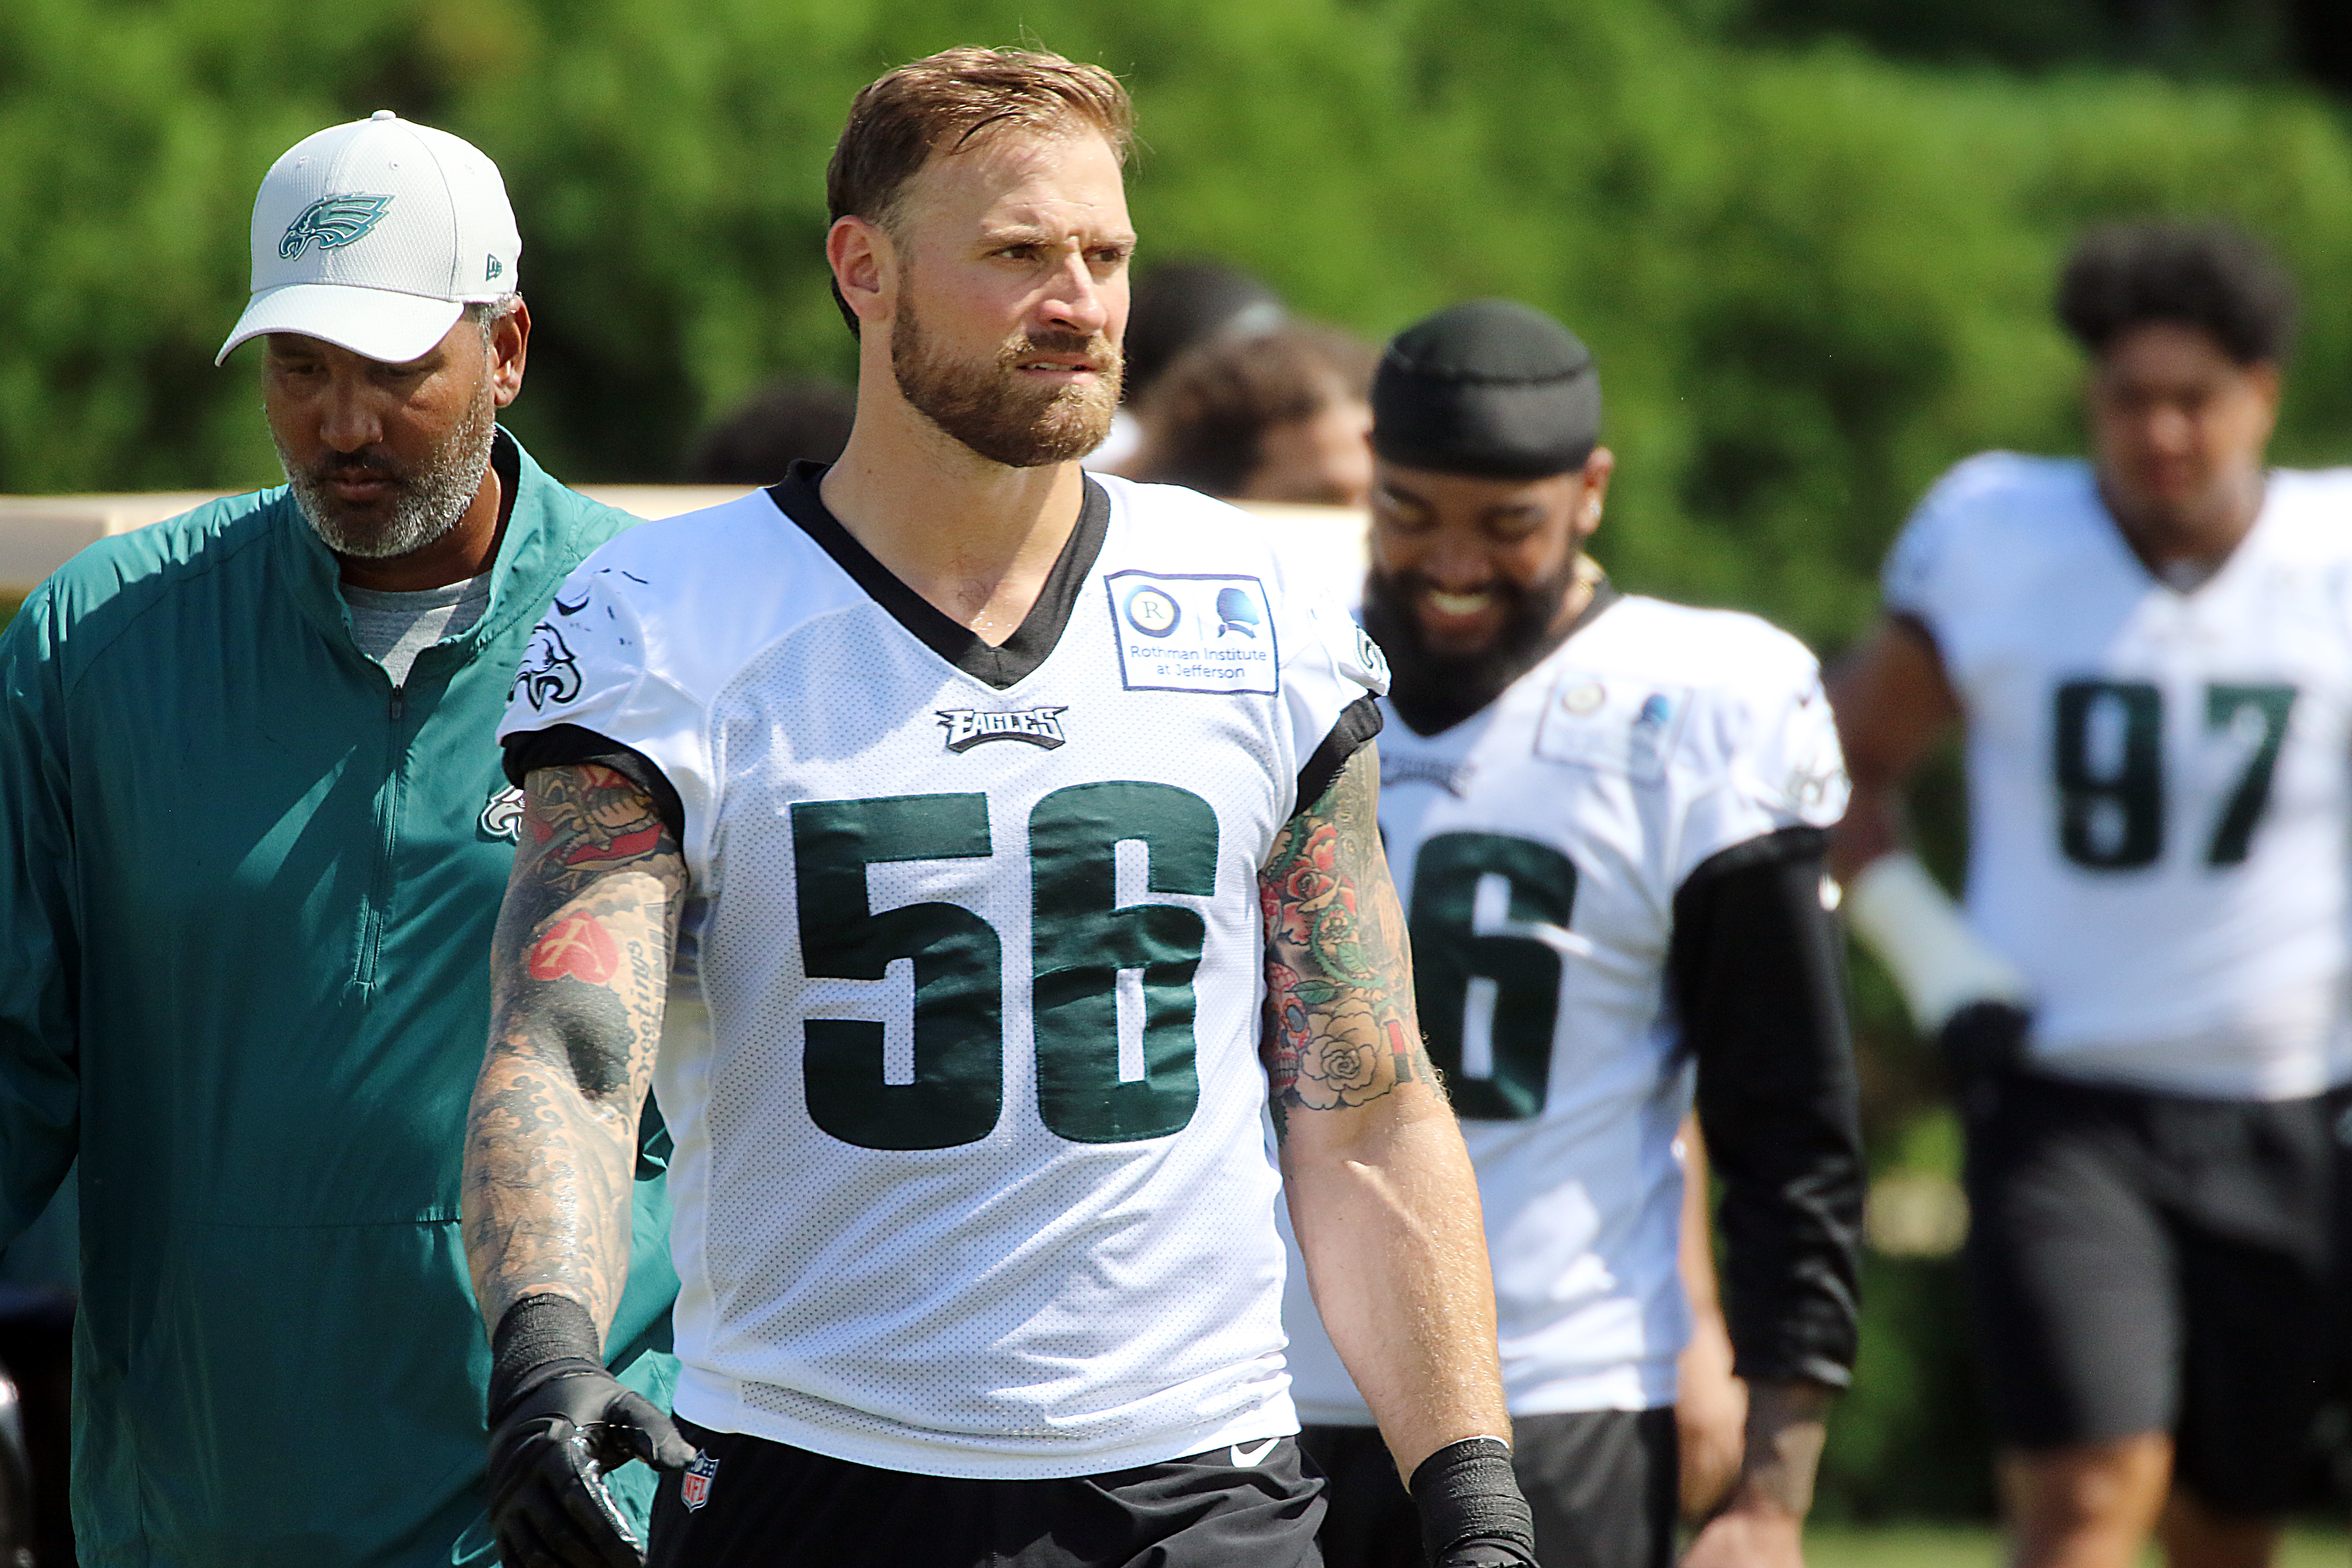 Chris Long walks back to the locker room after practice.